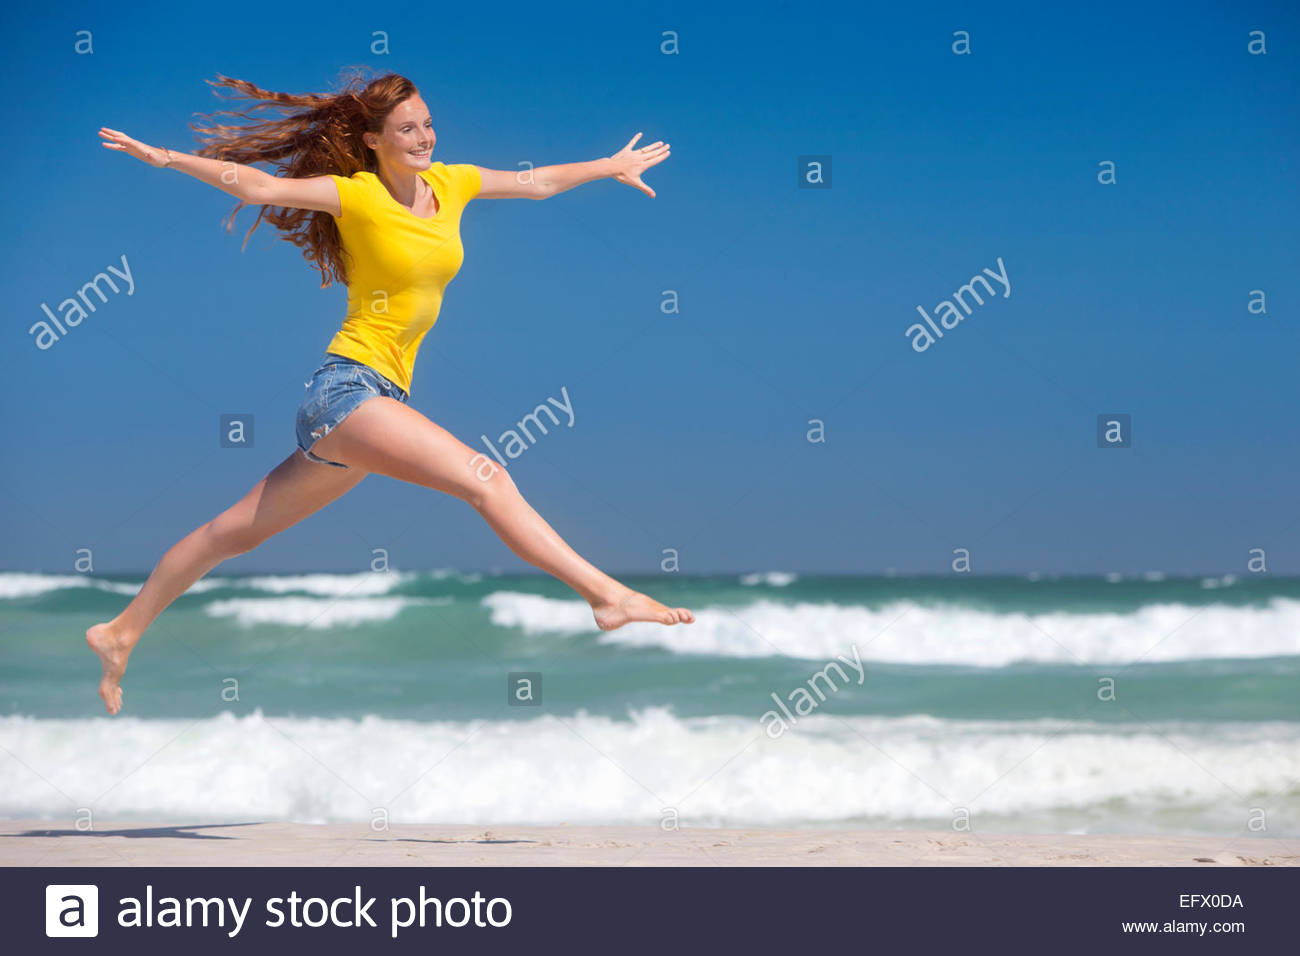 Happy woman leaping in air on sunny beach - Stock Image